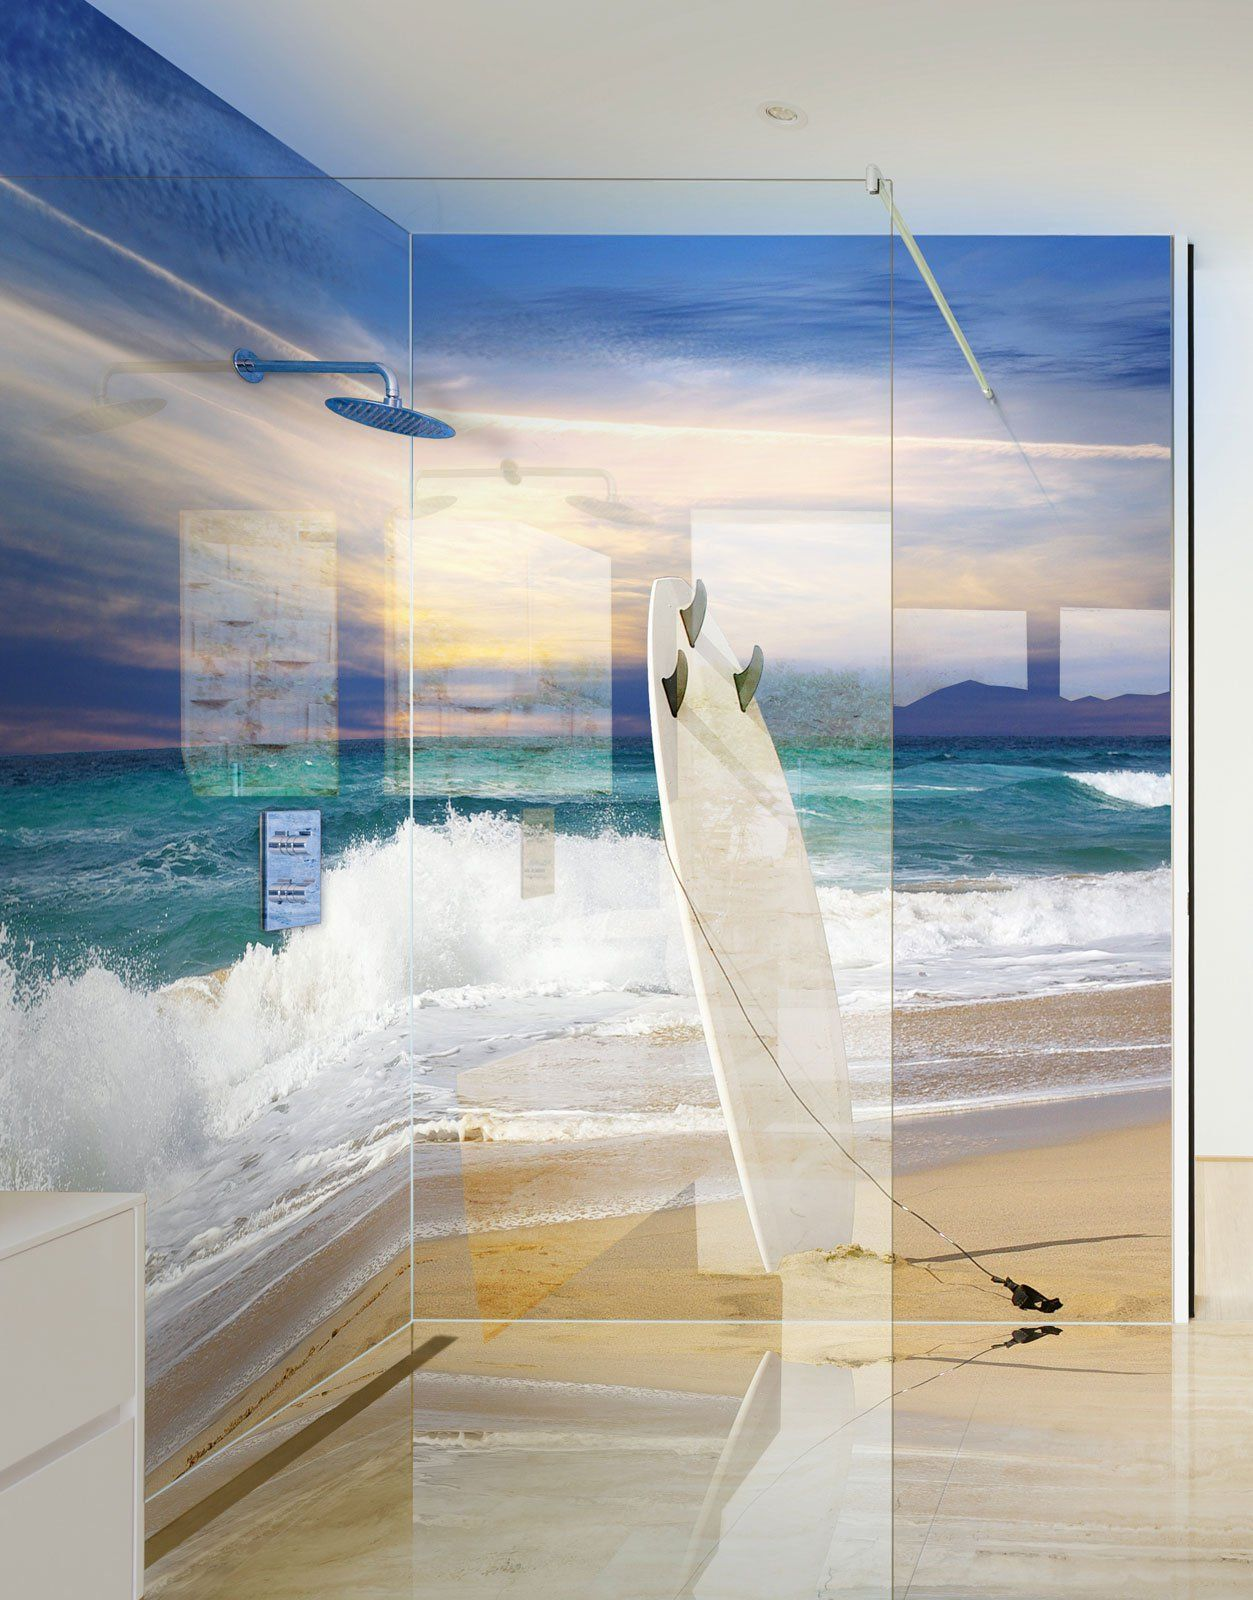 Surf Board In The Sand On A Beach Printed Acrylic Shower Panel Glass Shower Wall Shower Panels Wet Wall Shower Panels